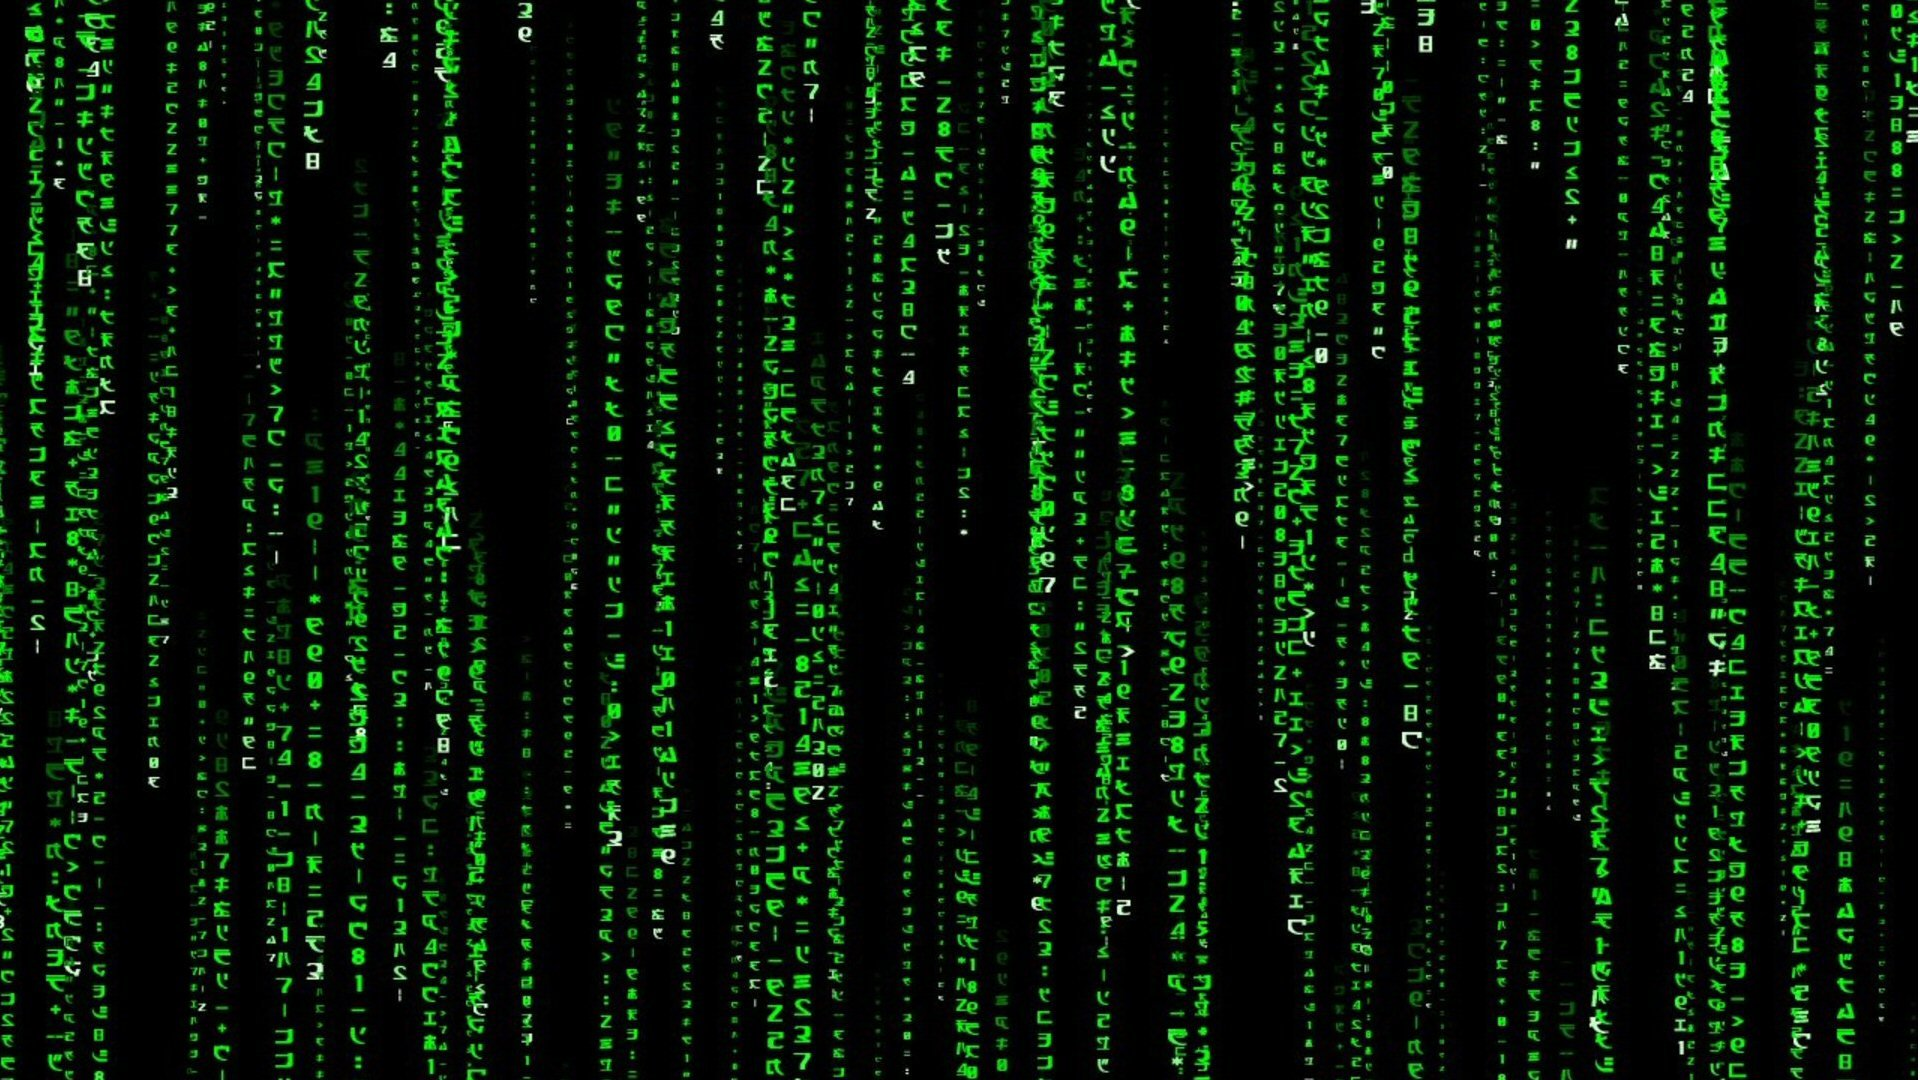 46 Moving Binary Code Wallpaper On Wallpapersafari